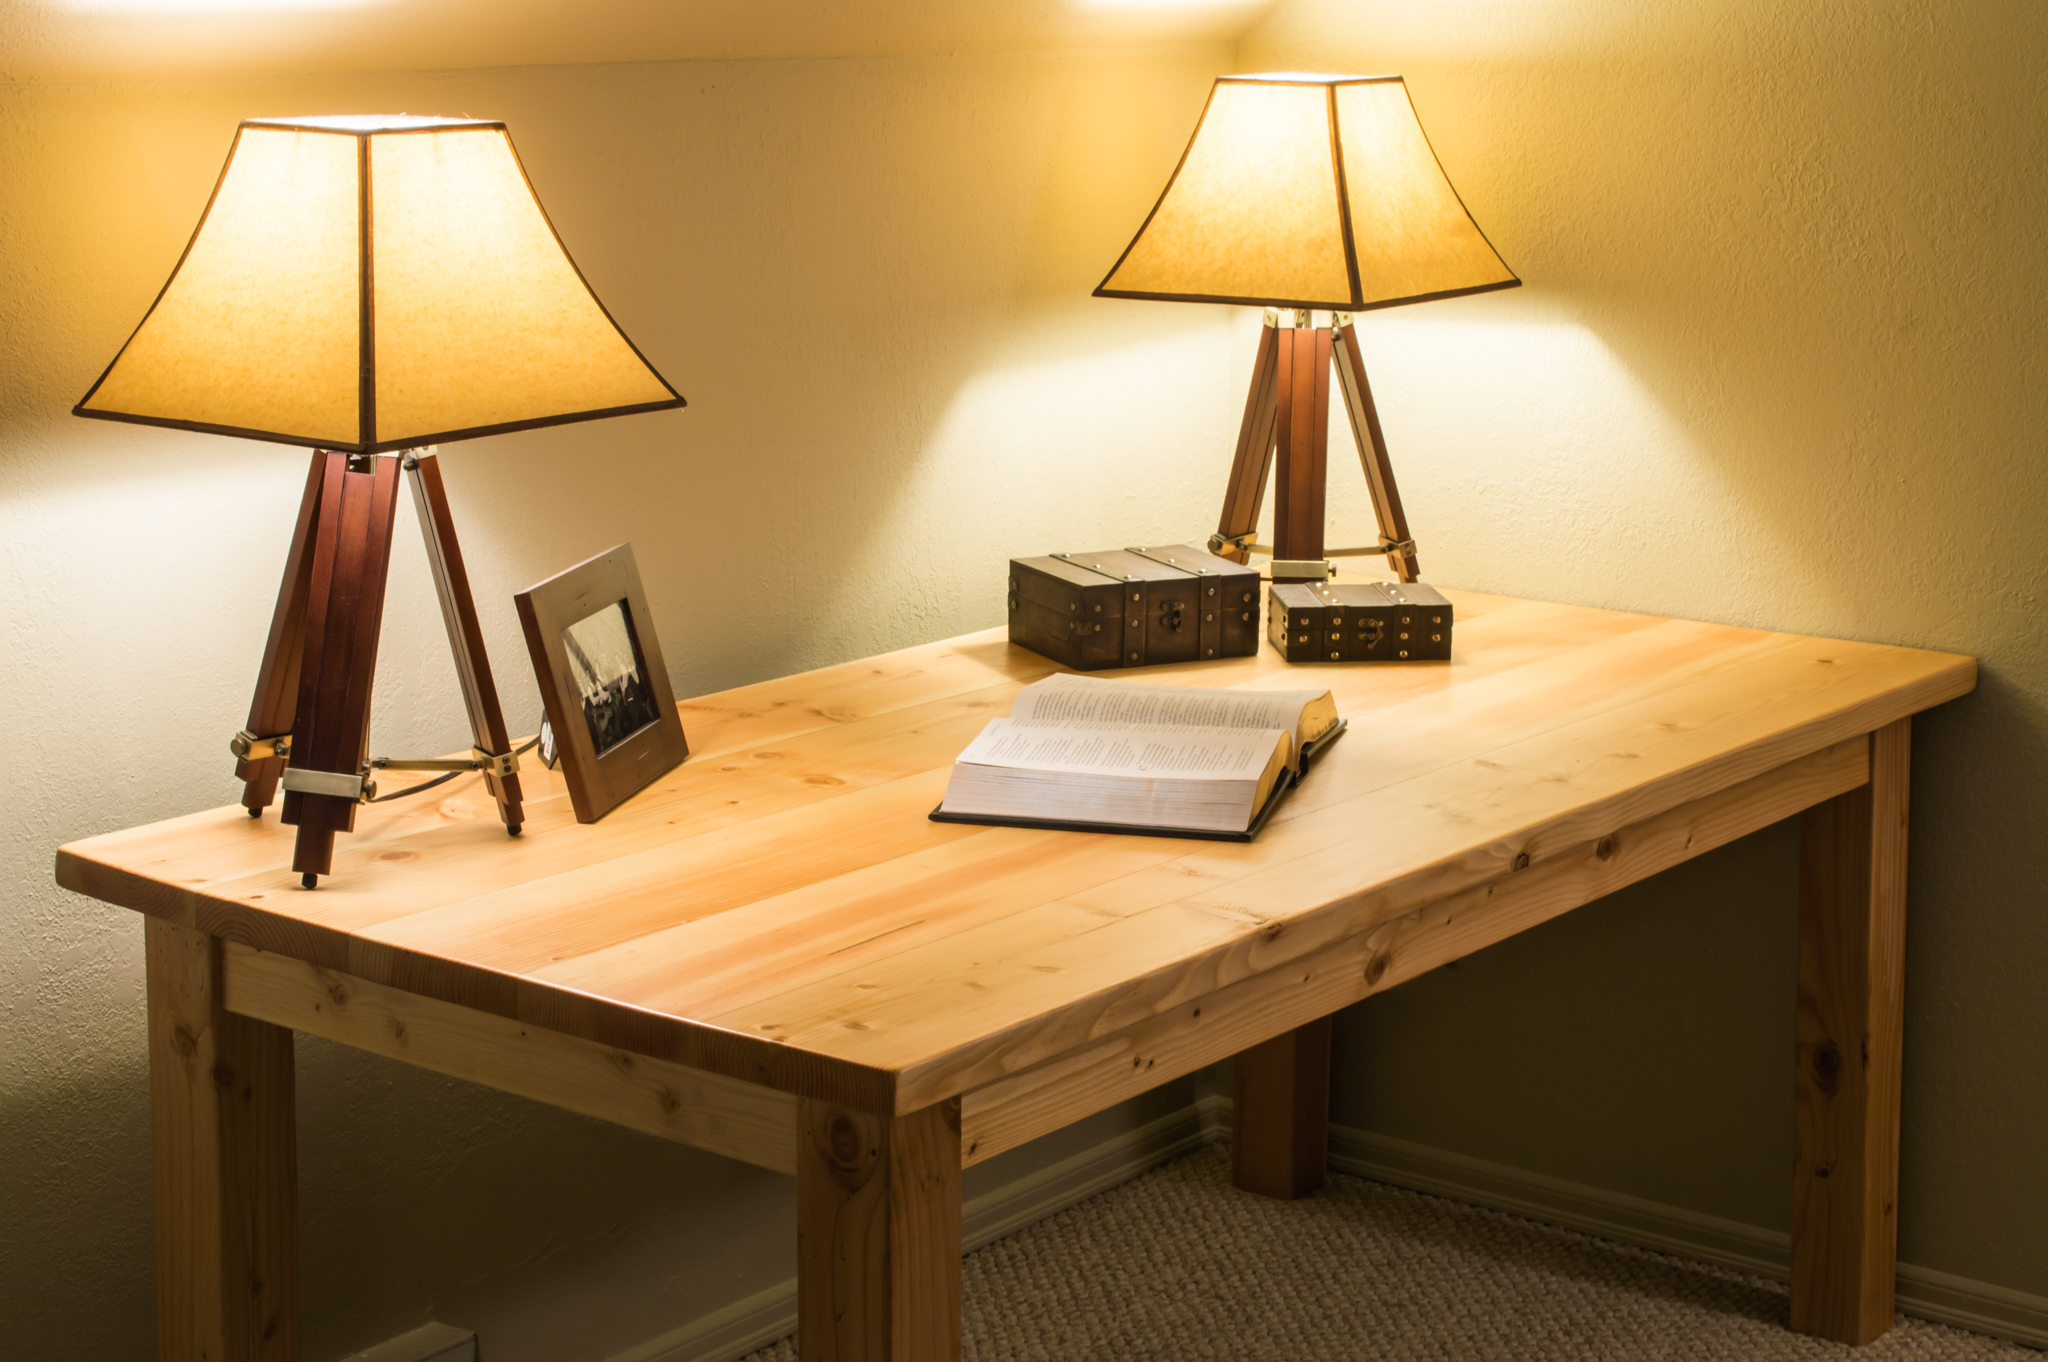 The table I built a couple months ago using my dowel jig.